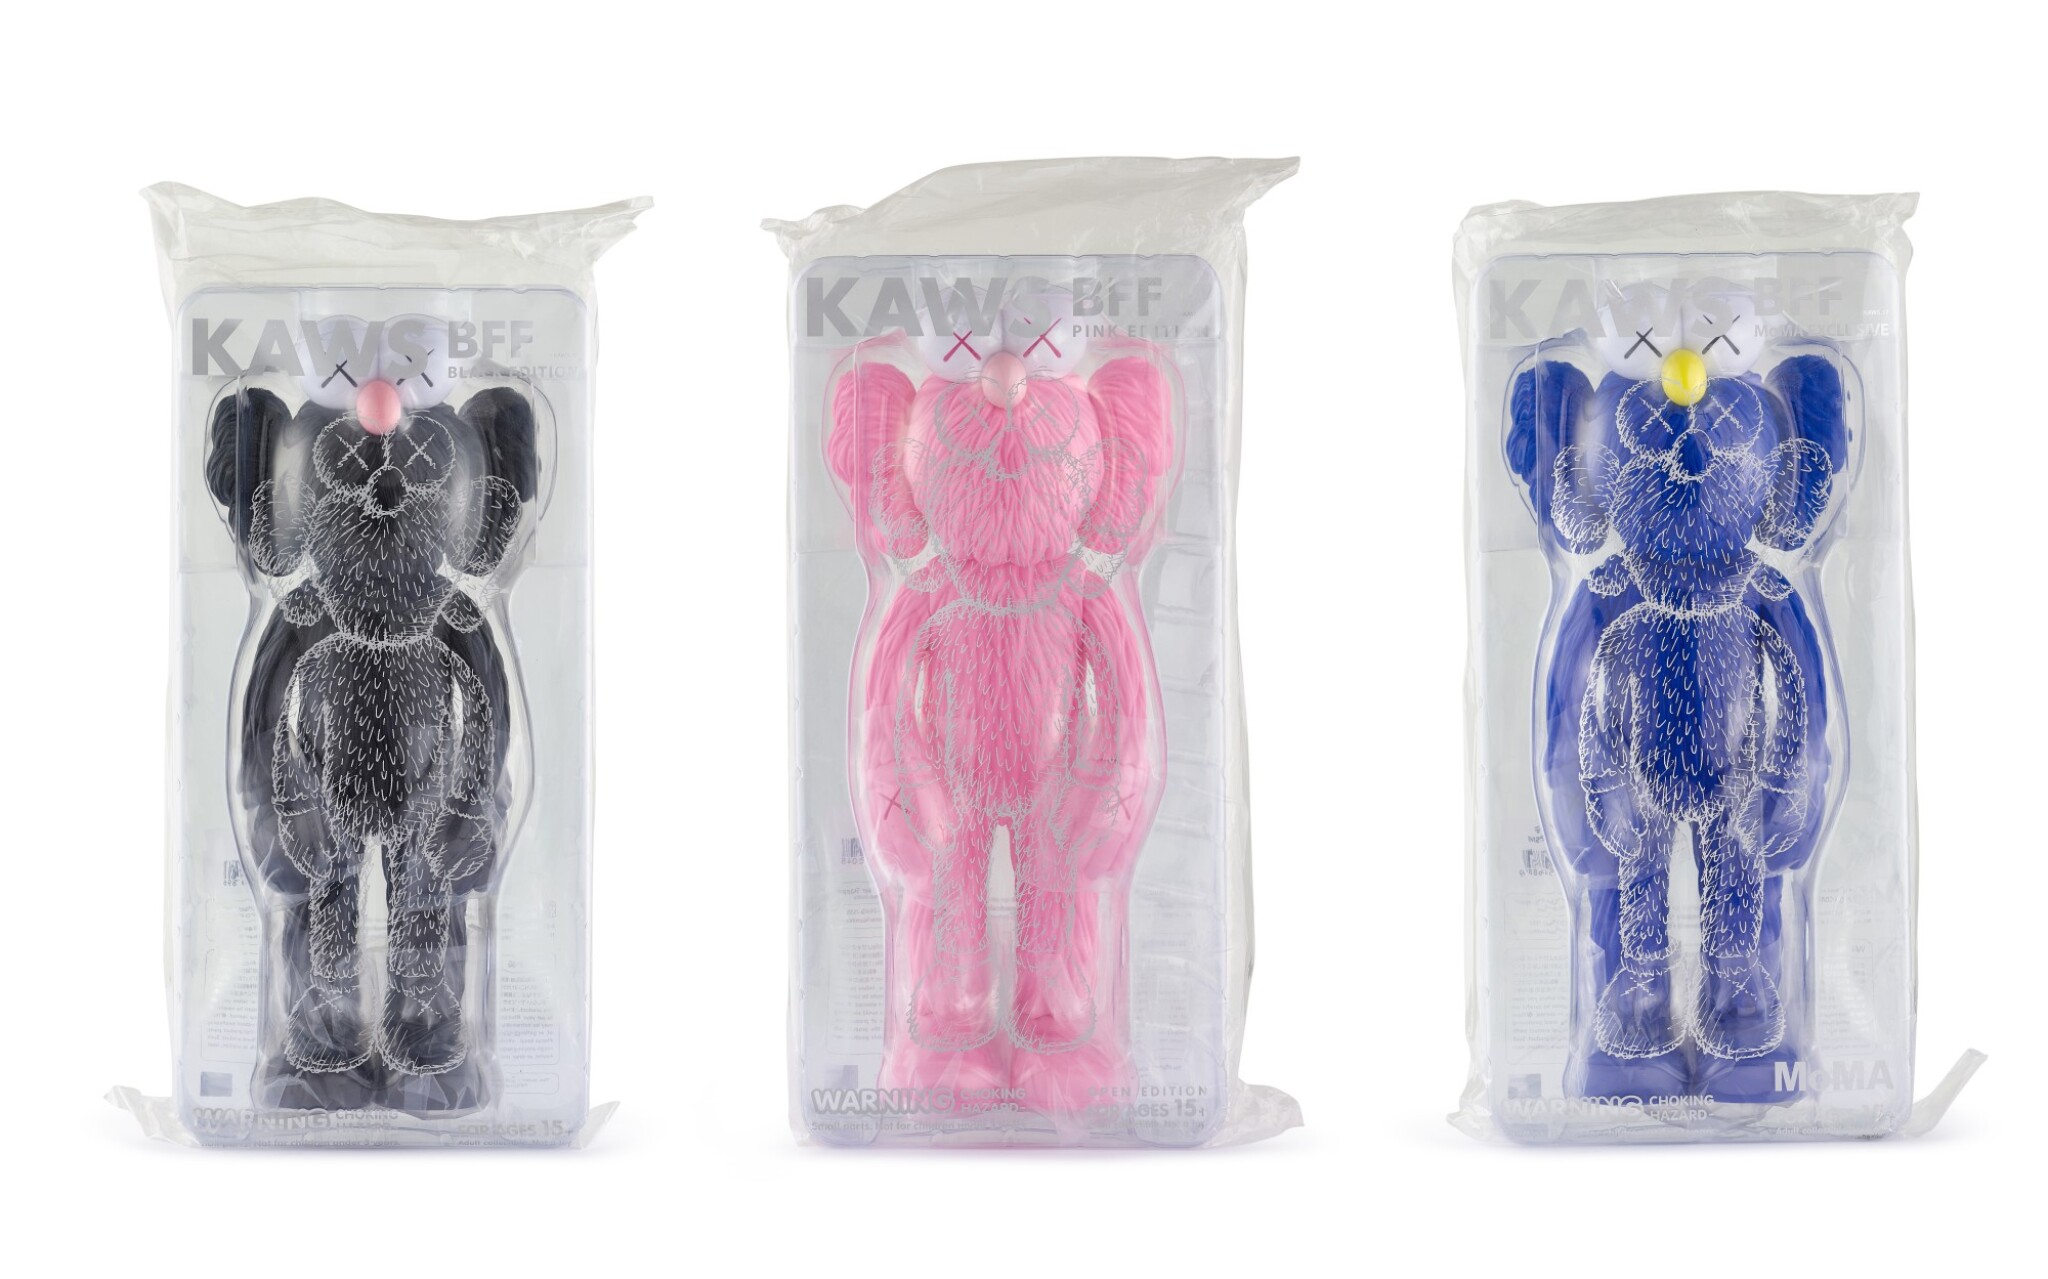 KAWS | BFF- 黑色版/粉紅粄/MOMA獨家版(三件)BFF - Black Edition/Pink Edition/MOMA Exclusive (three works)